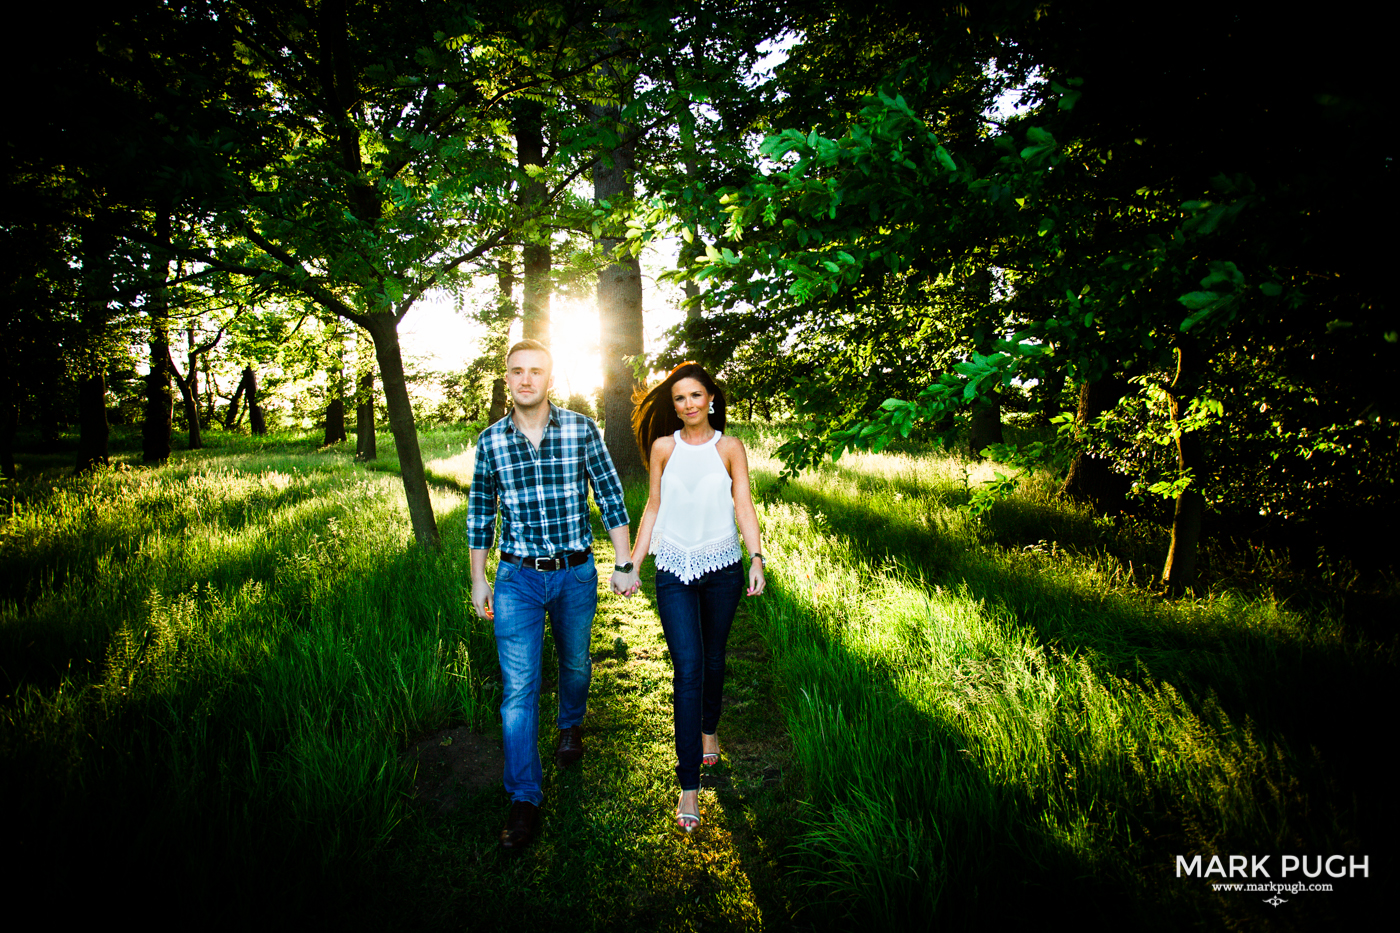 024 -  Jacqueline and Davids preWED love session at Kelham House Country Manor Hotel by www.markpugh.com - 2.JPG